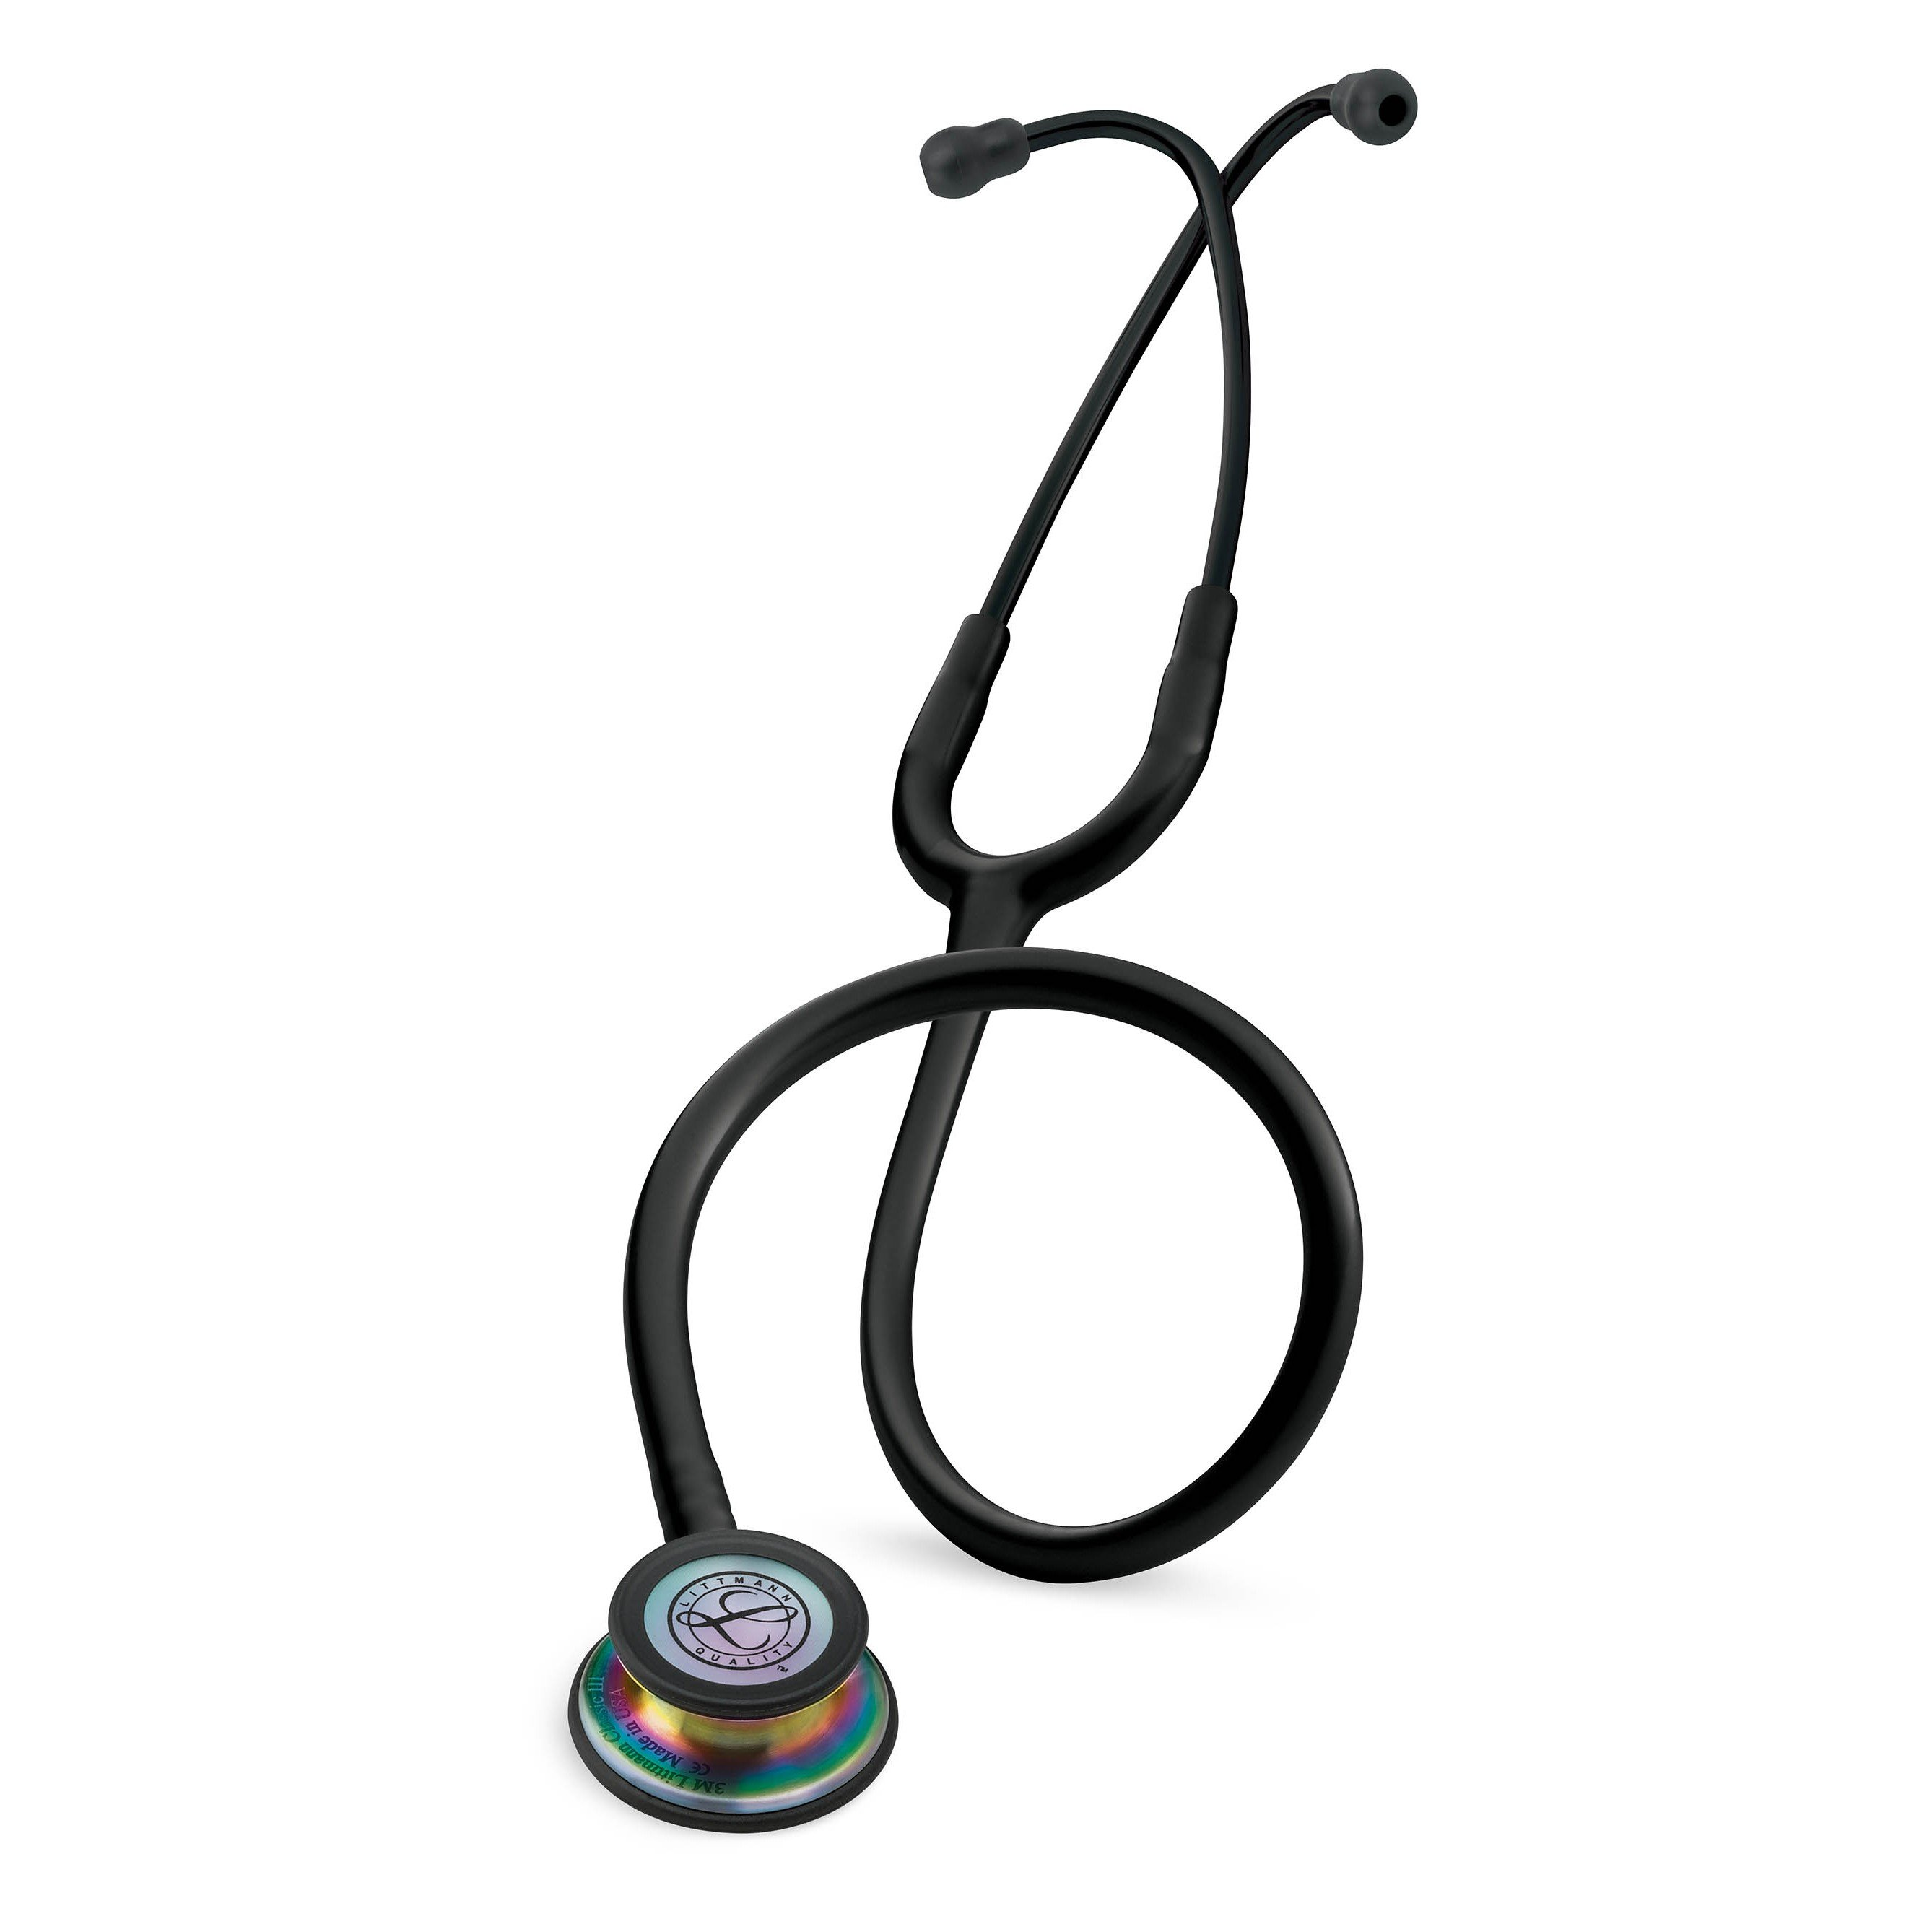 Littmann Classic III stethoscope Black with Rainbow finish Chestpiece 5870